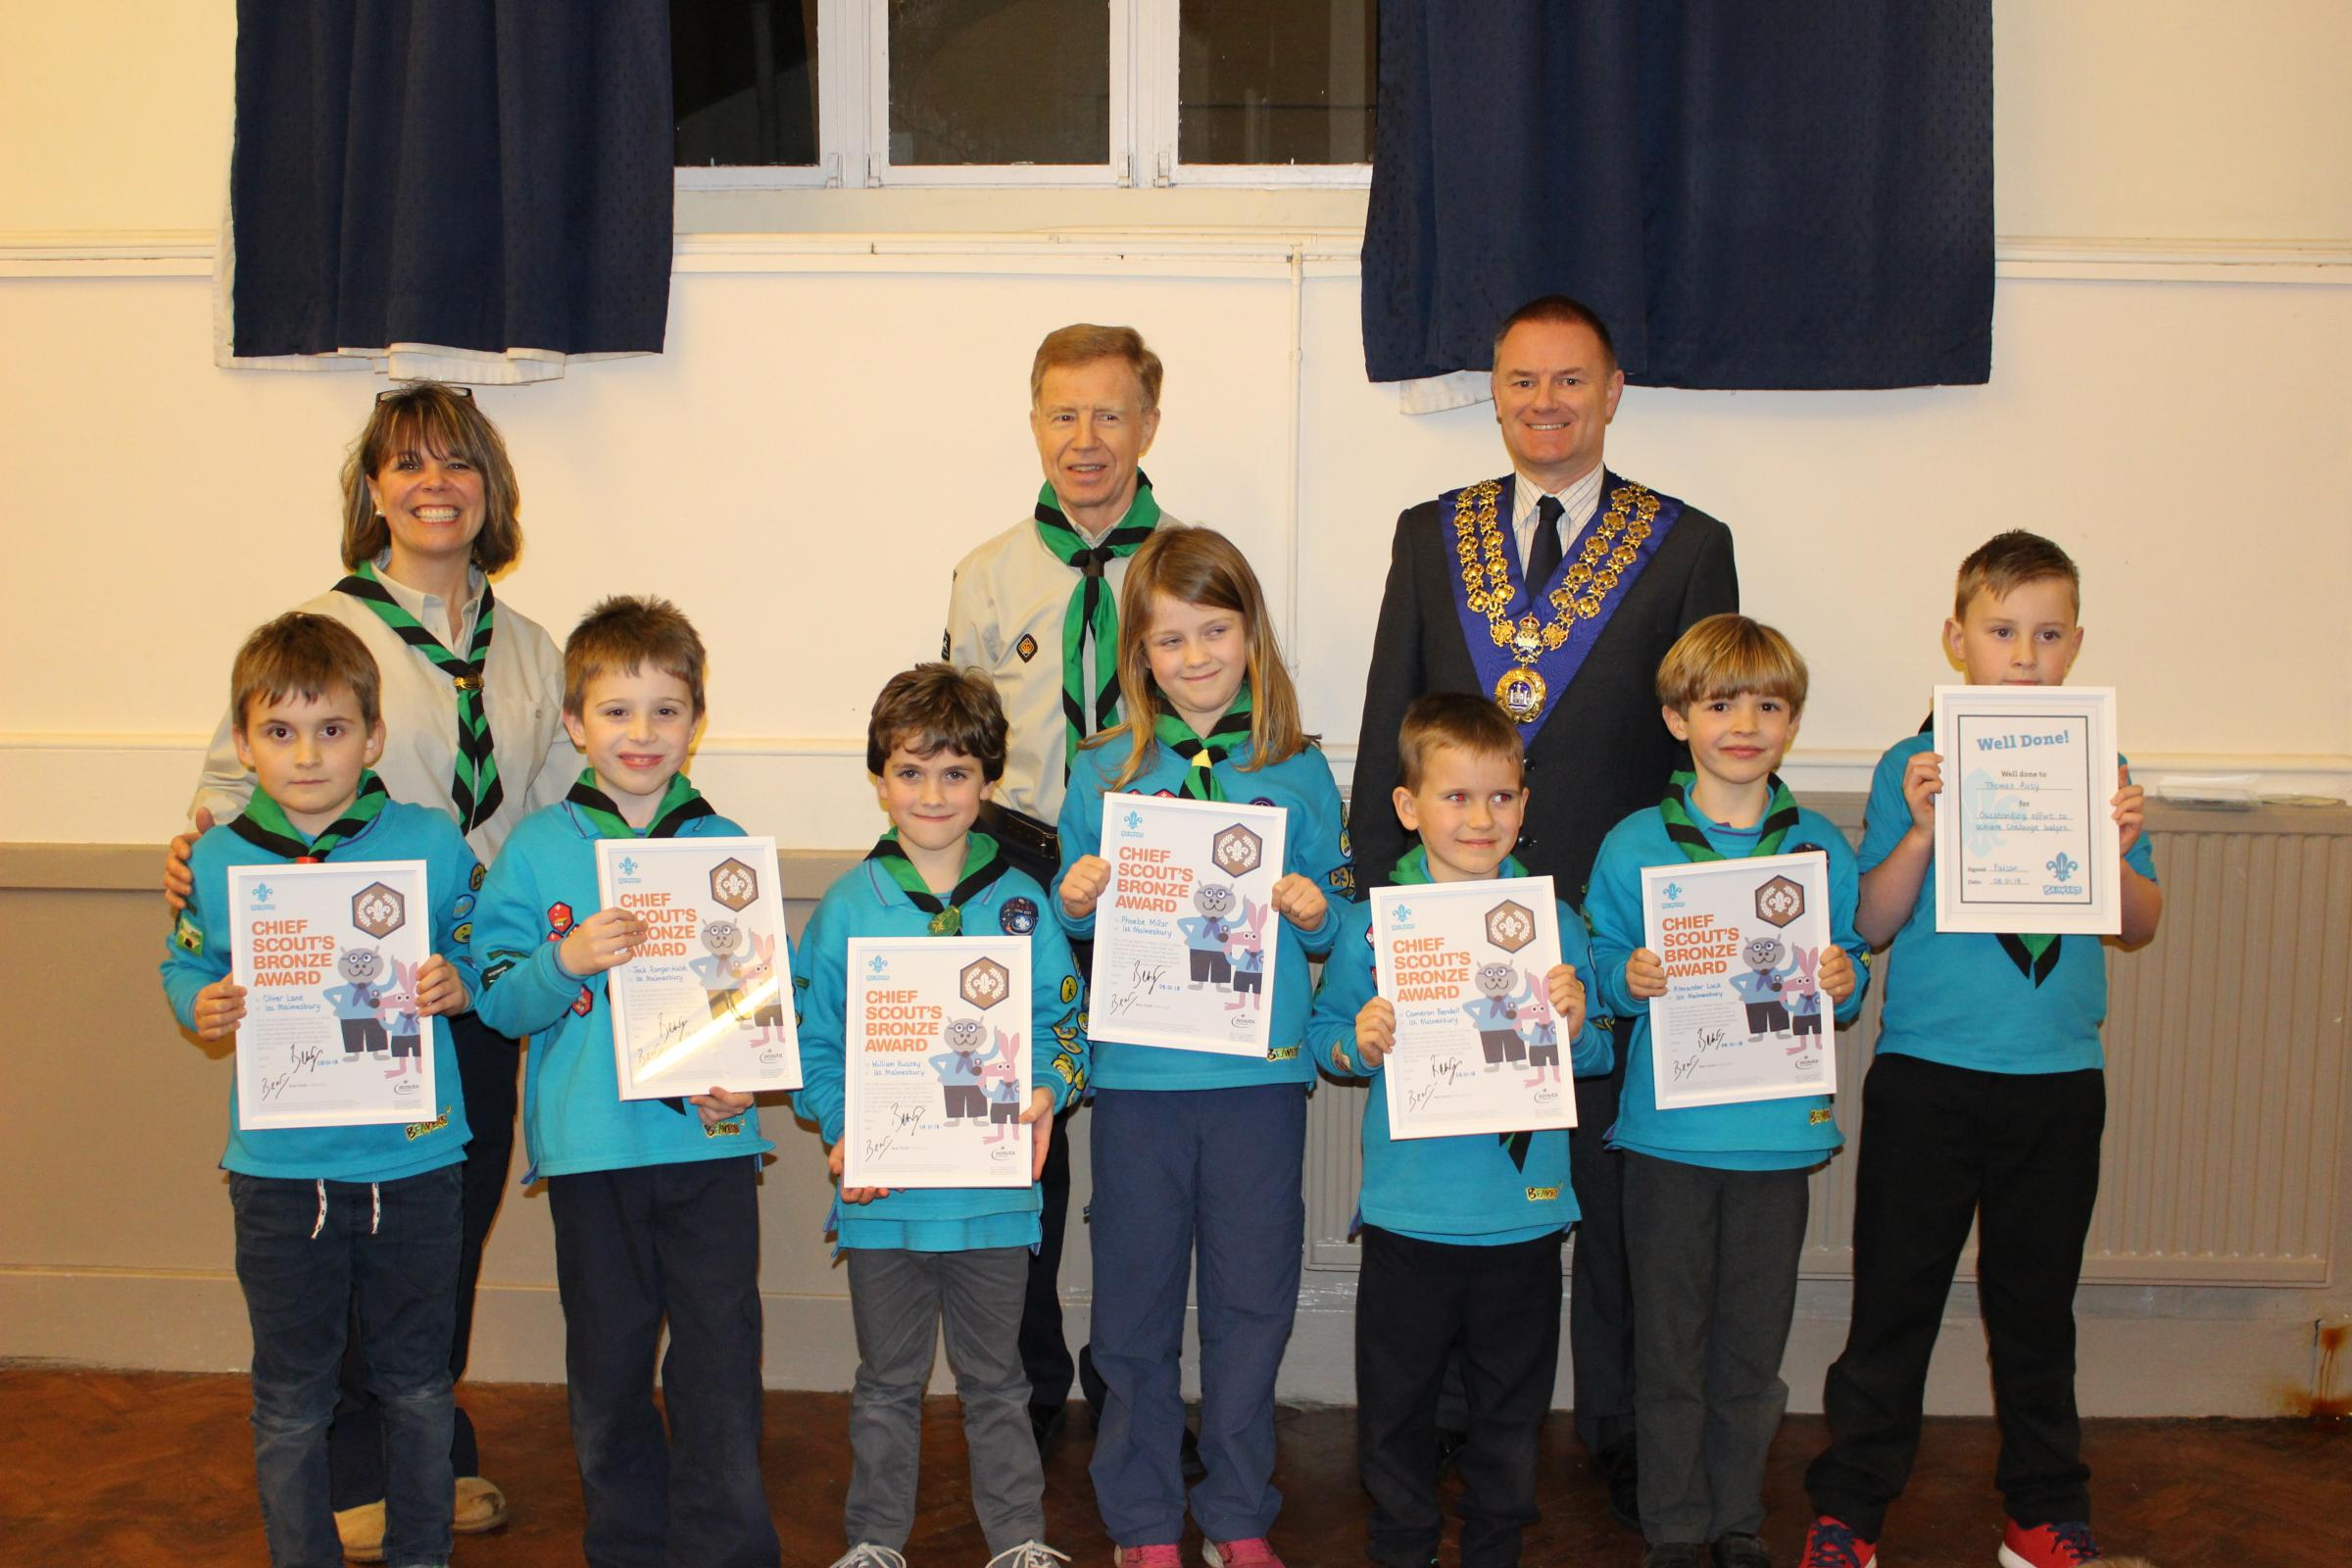 Malmesbury Beavers who were awarded their Bronze Chief Scout Beaver Award with Beaver Scout Leader Gynette Ranger-Walsh, Group Scout Leader Jonathan Barstow and Town Mayor Wayne Jones